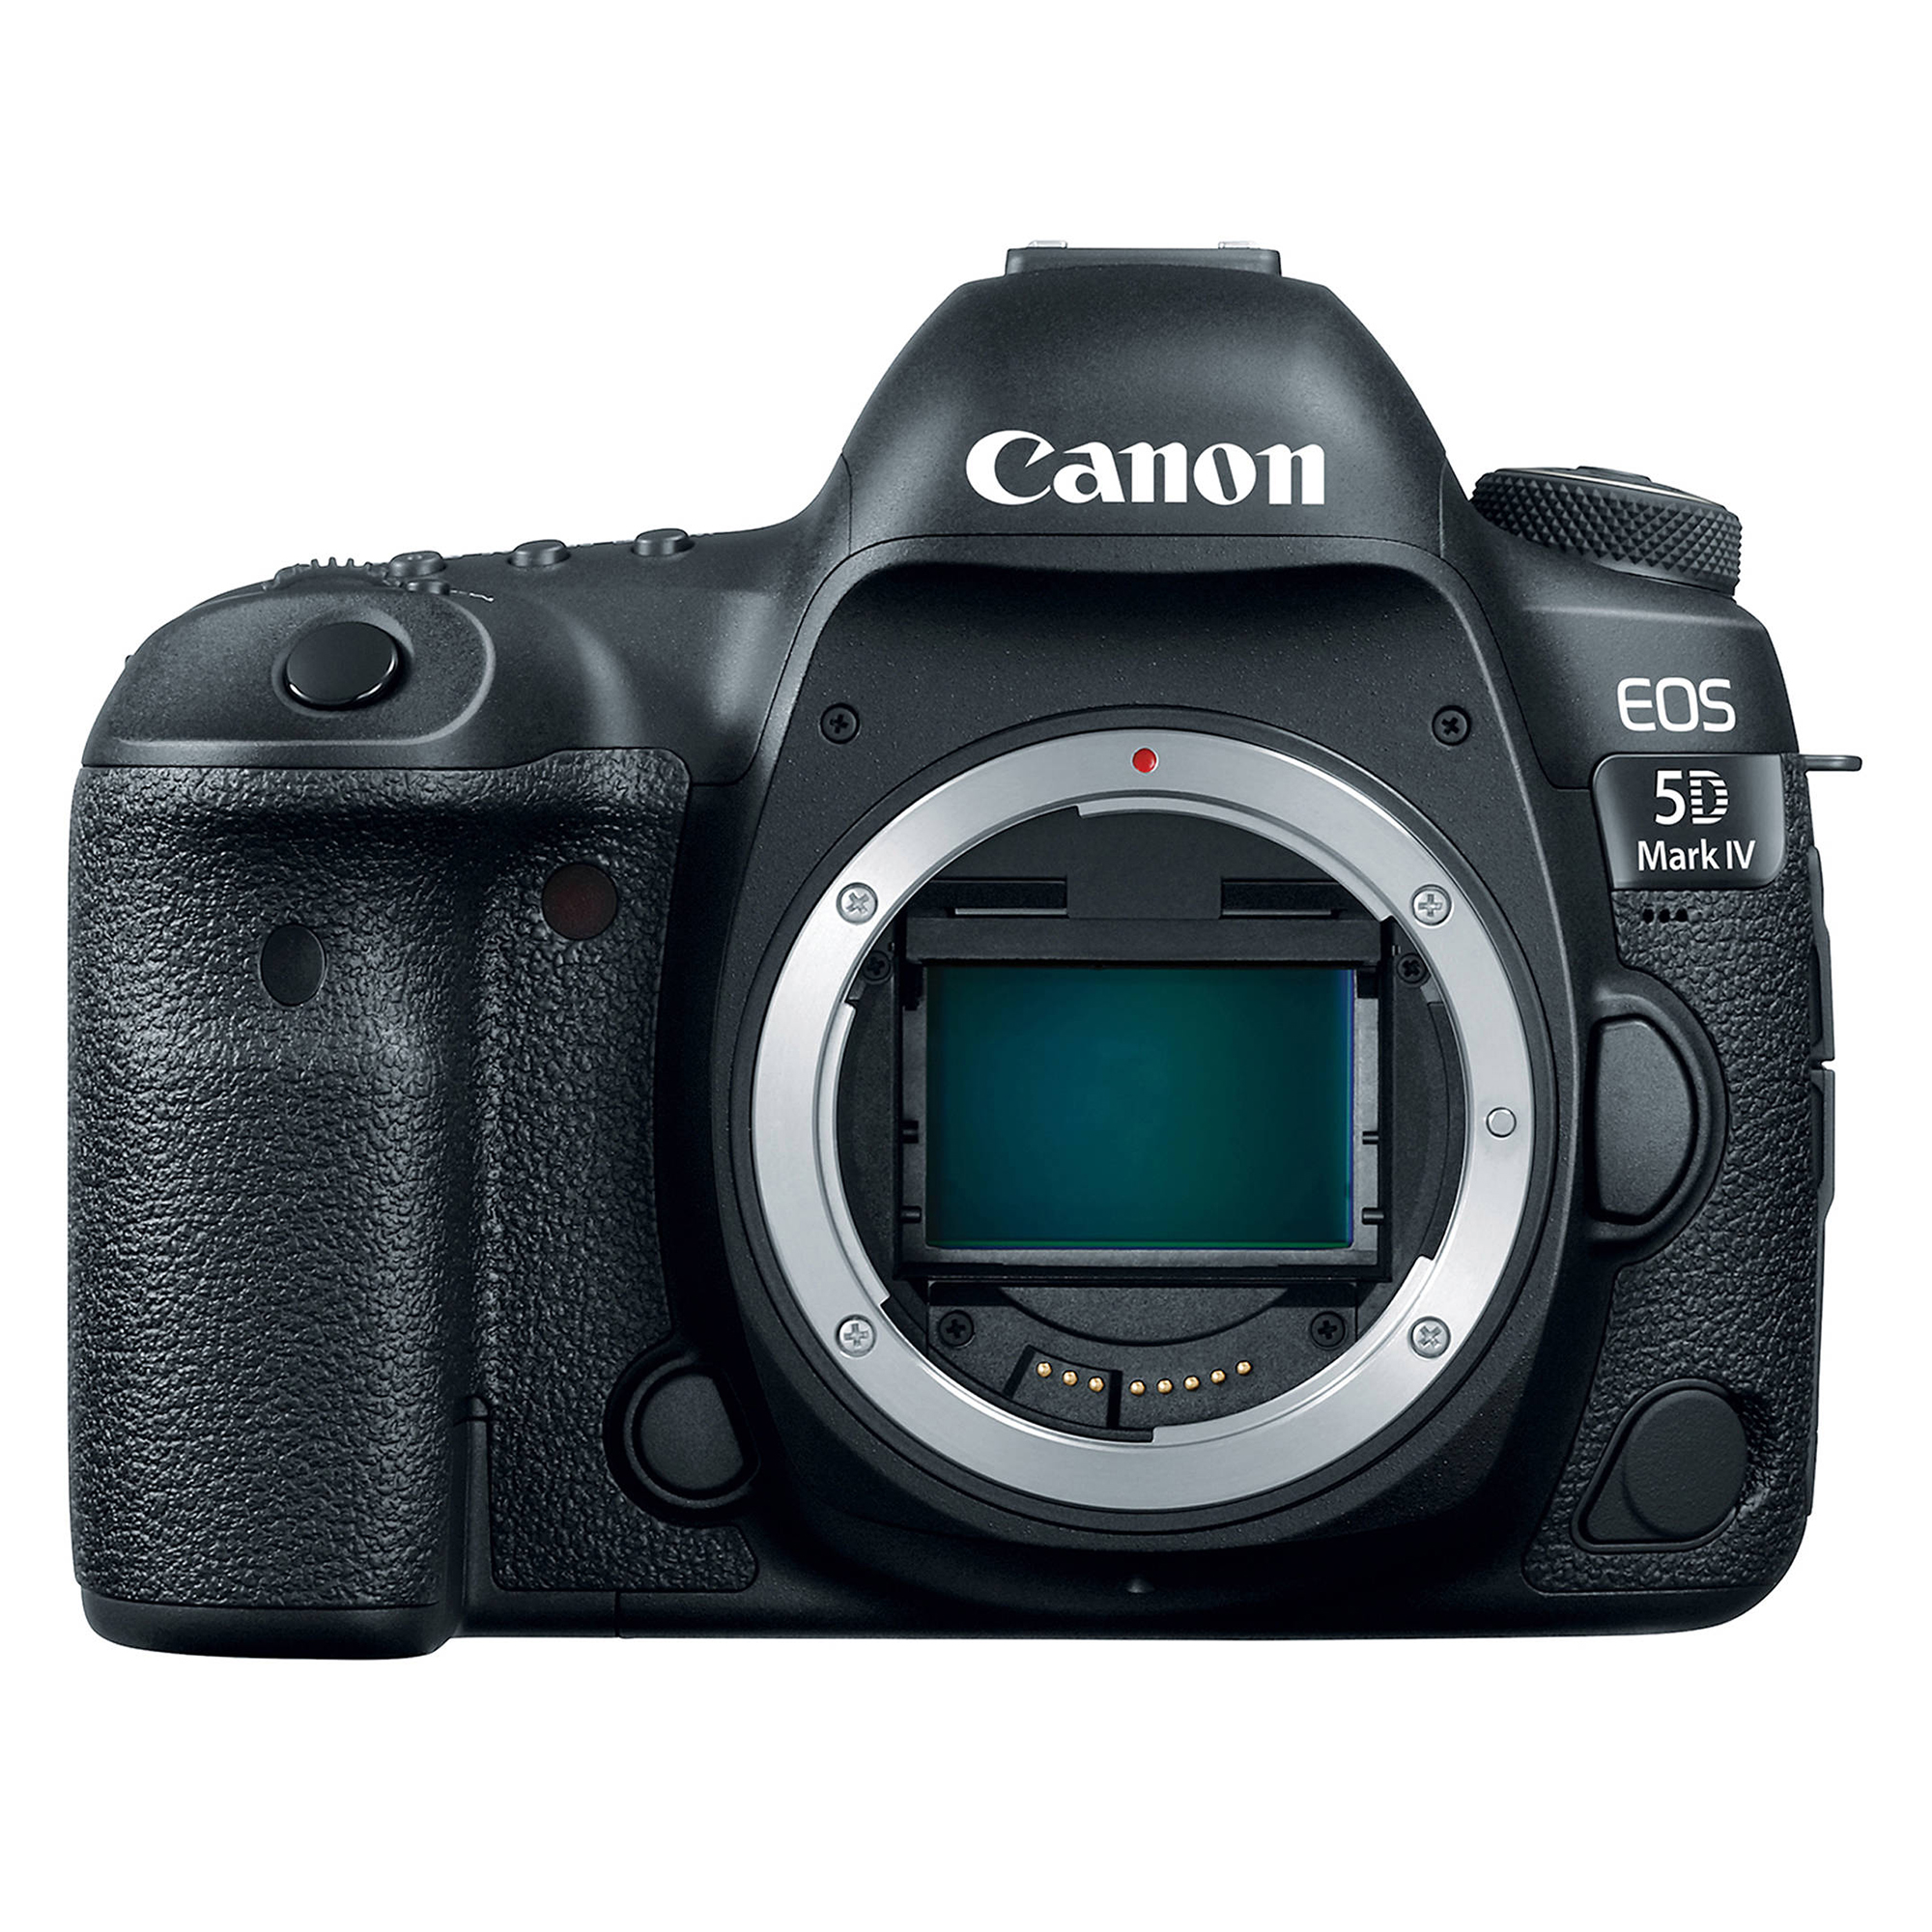 Canon EOS 5D Mark IV - Body Only + FREE GIFT 8GB MEMORY & FLASH BRACKET & ICS VEST